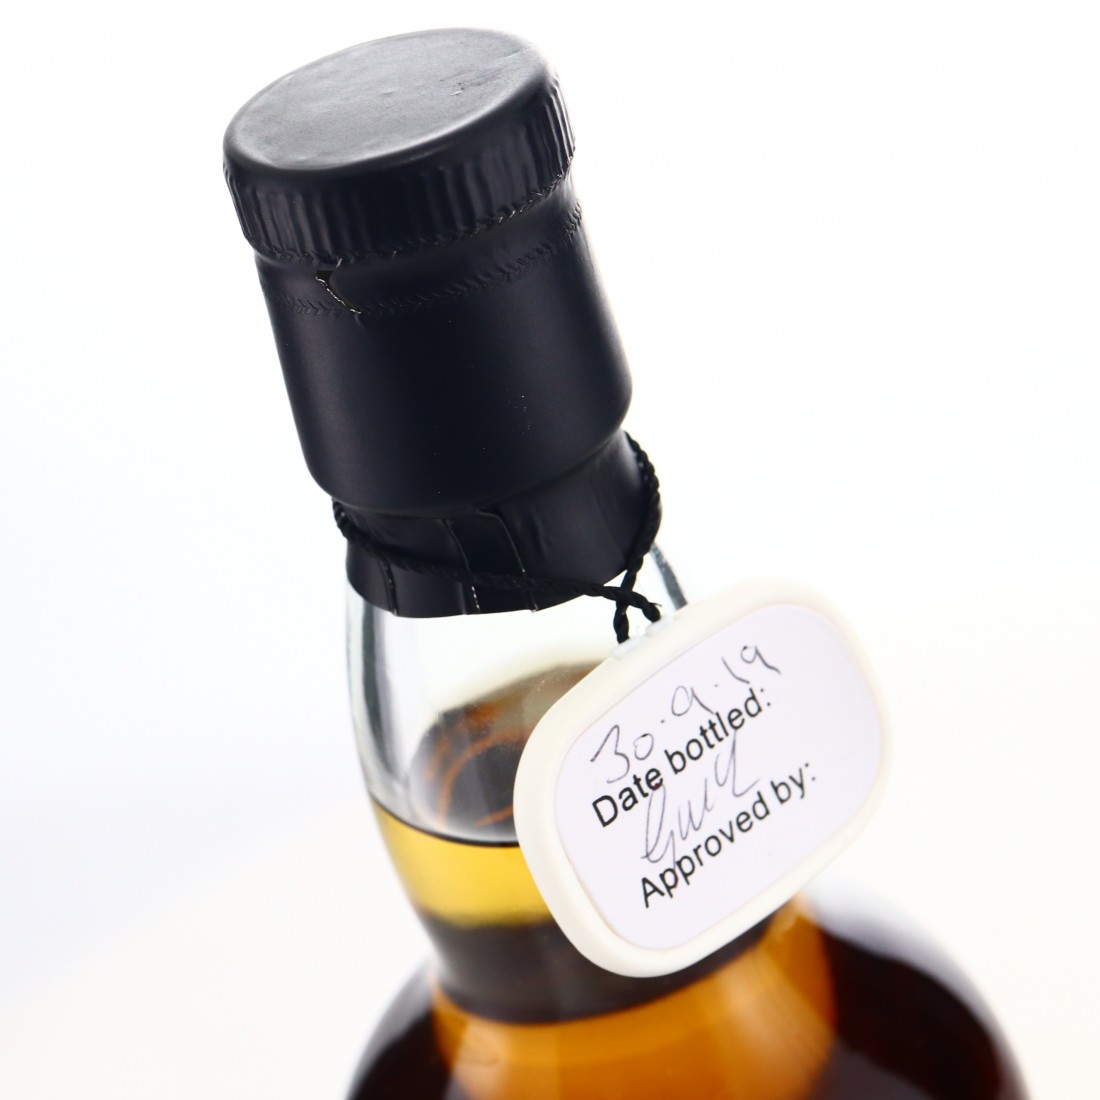 Springbank 2011 Duty Paid Sample 8 Year Old / Fresh Sherry Butt